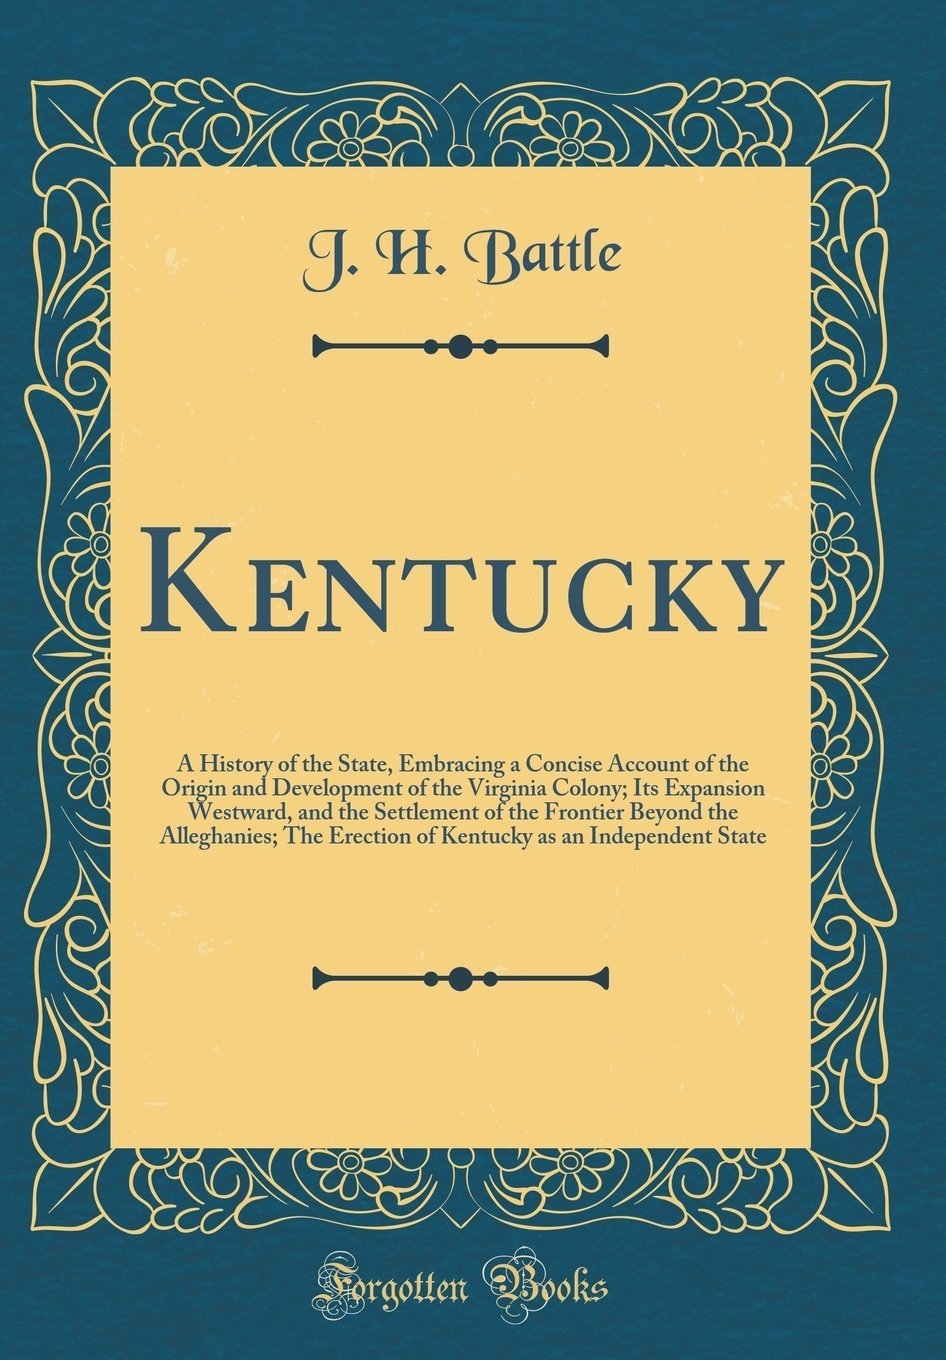 Kentucky: A History of the State, Embracing a Concise Account of the Origin and Development of the Virginia Colony; Its Expansion Westward, and the ... Erection of Kentucky as an Independent State pdf epub